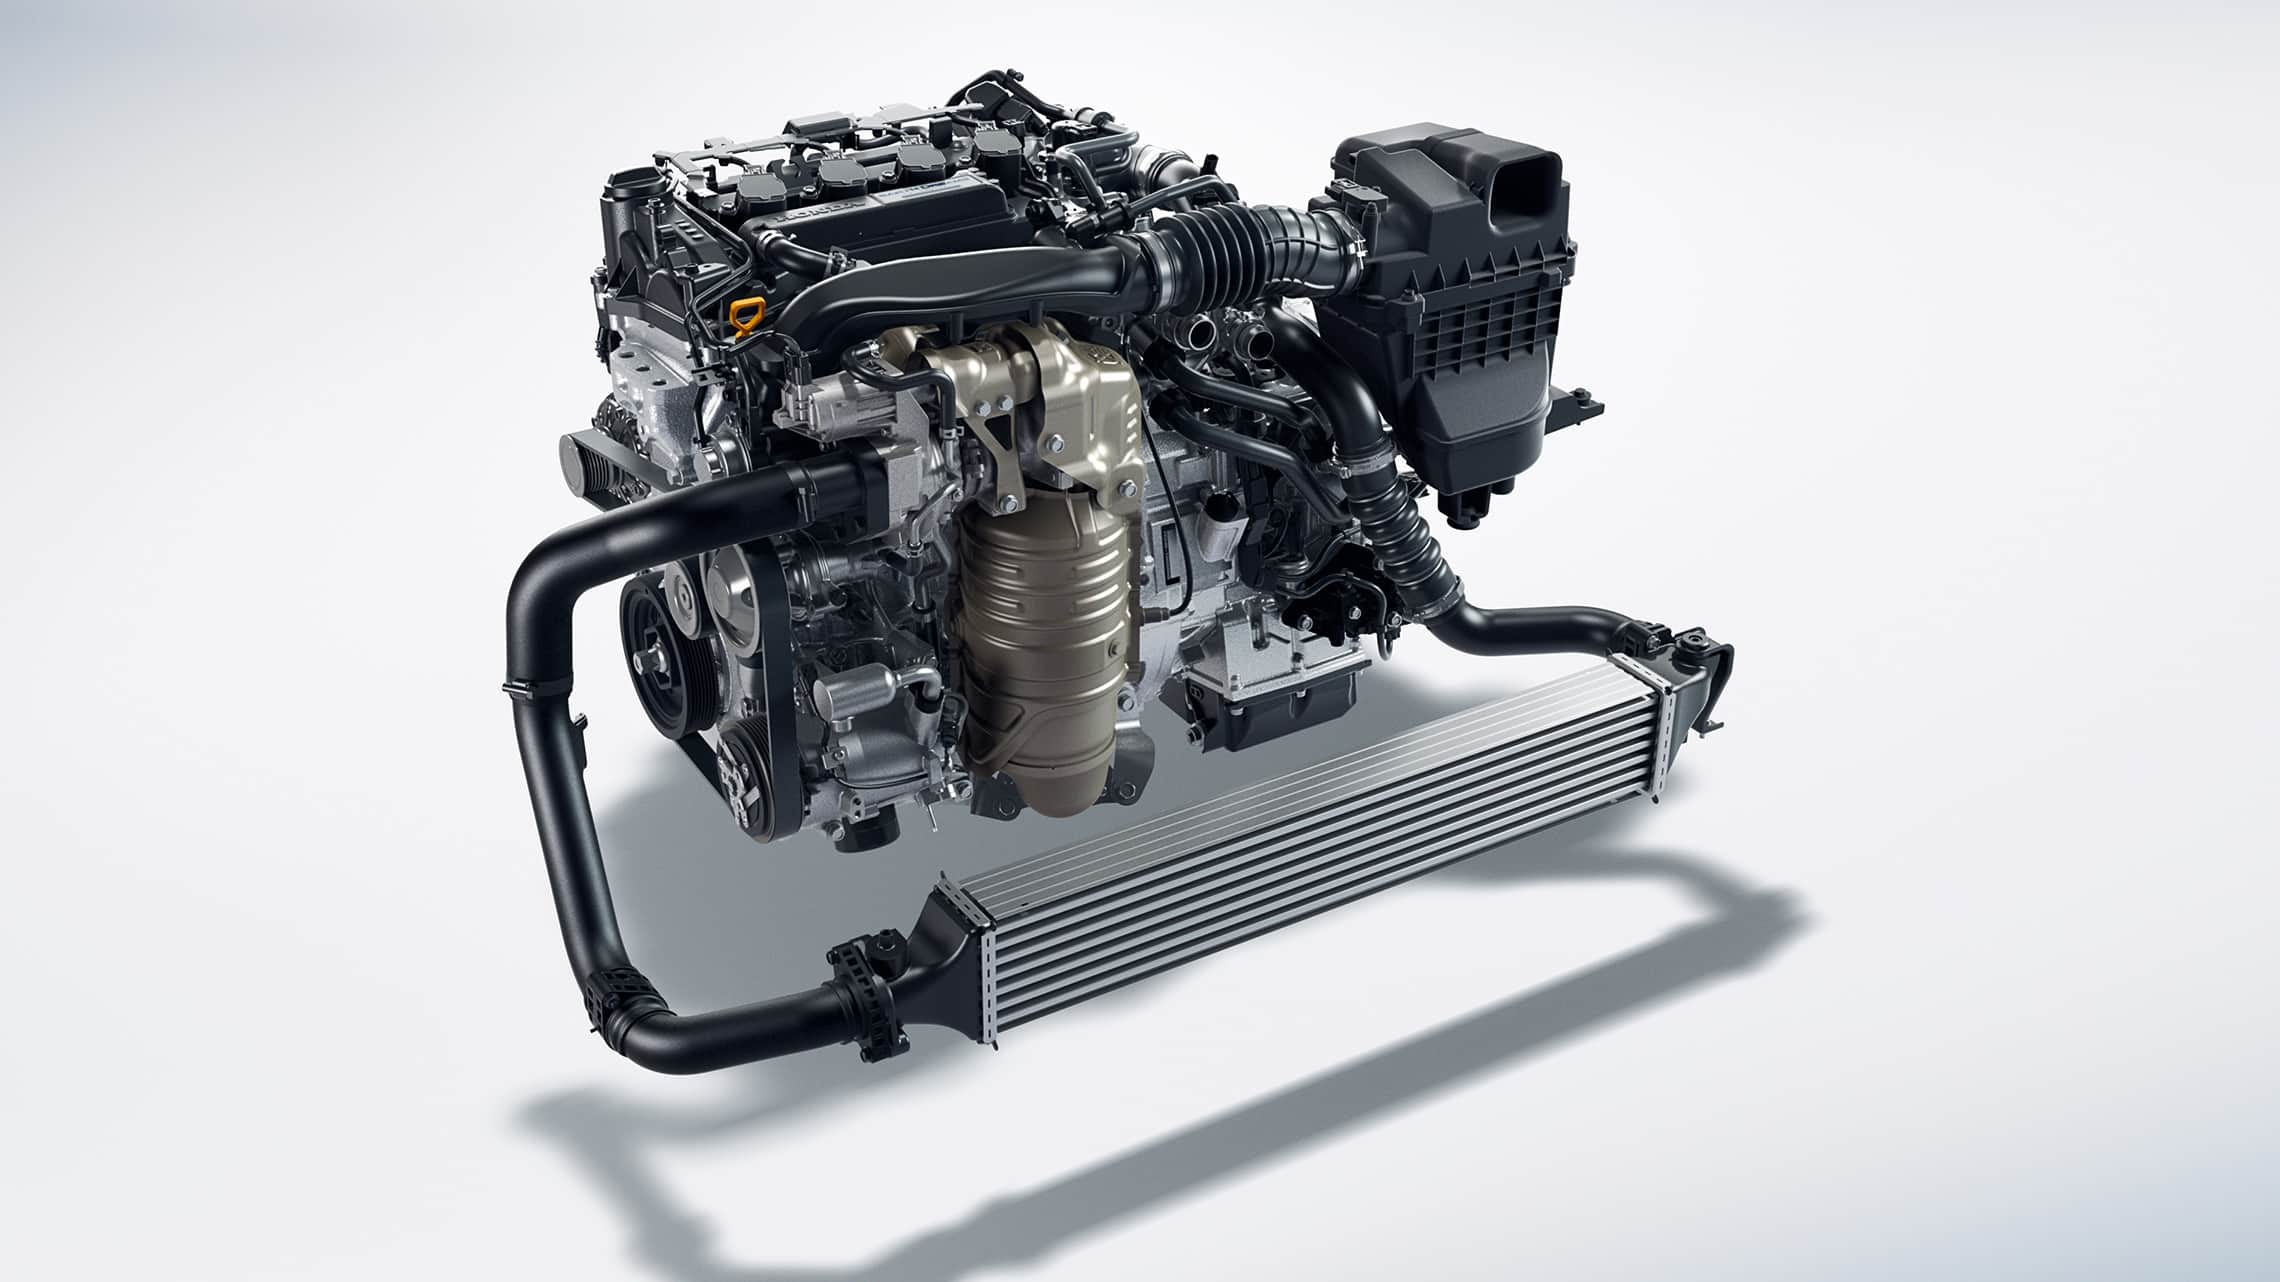 1.5-liter turbocharged engine detail in the 2020 Honda Civic Coupe.